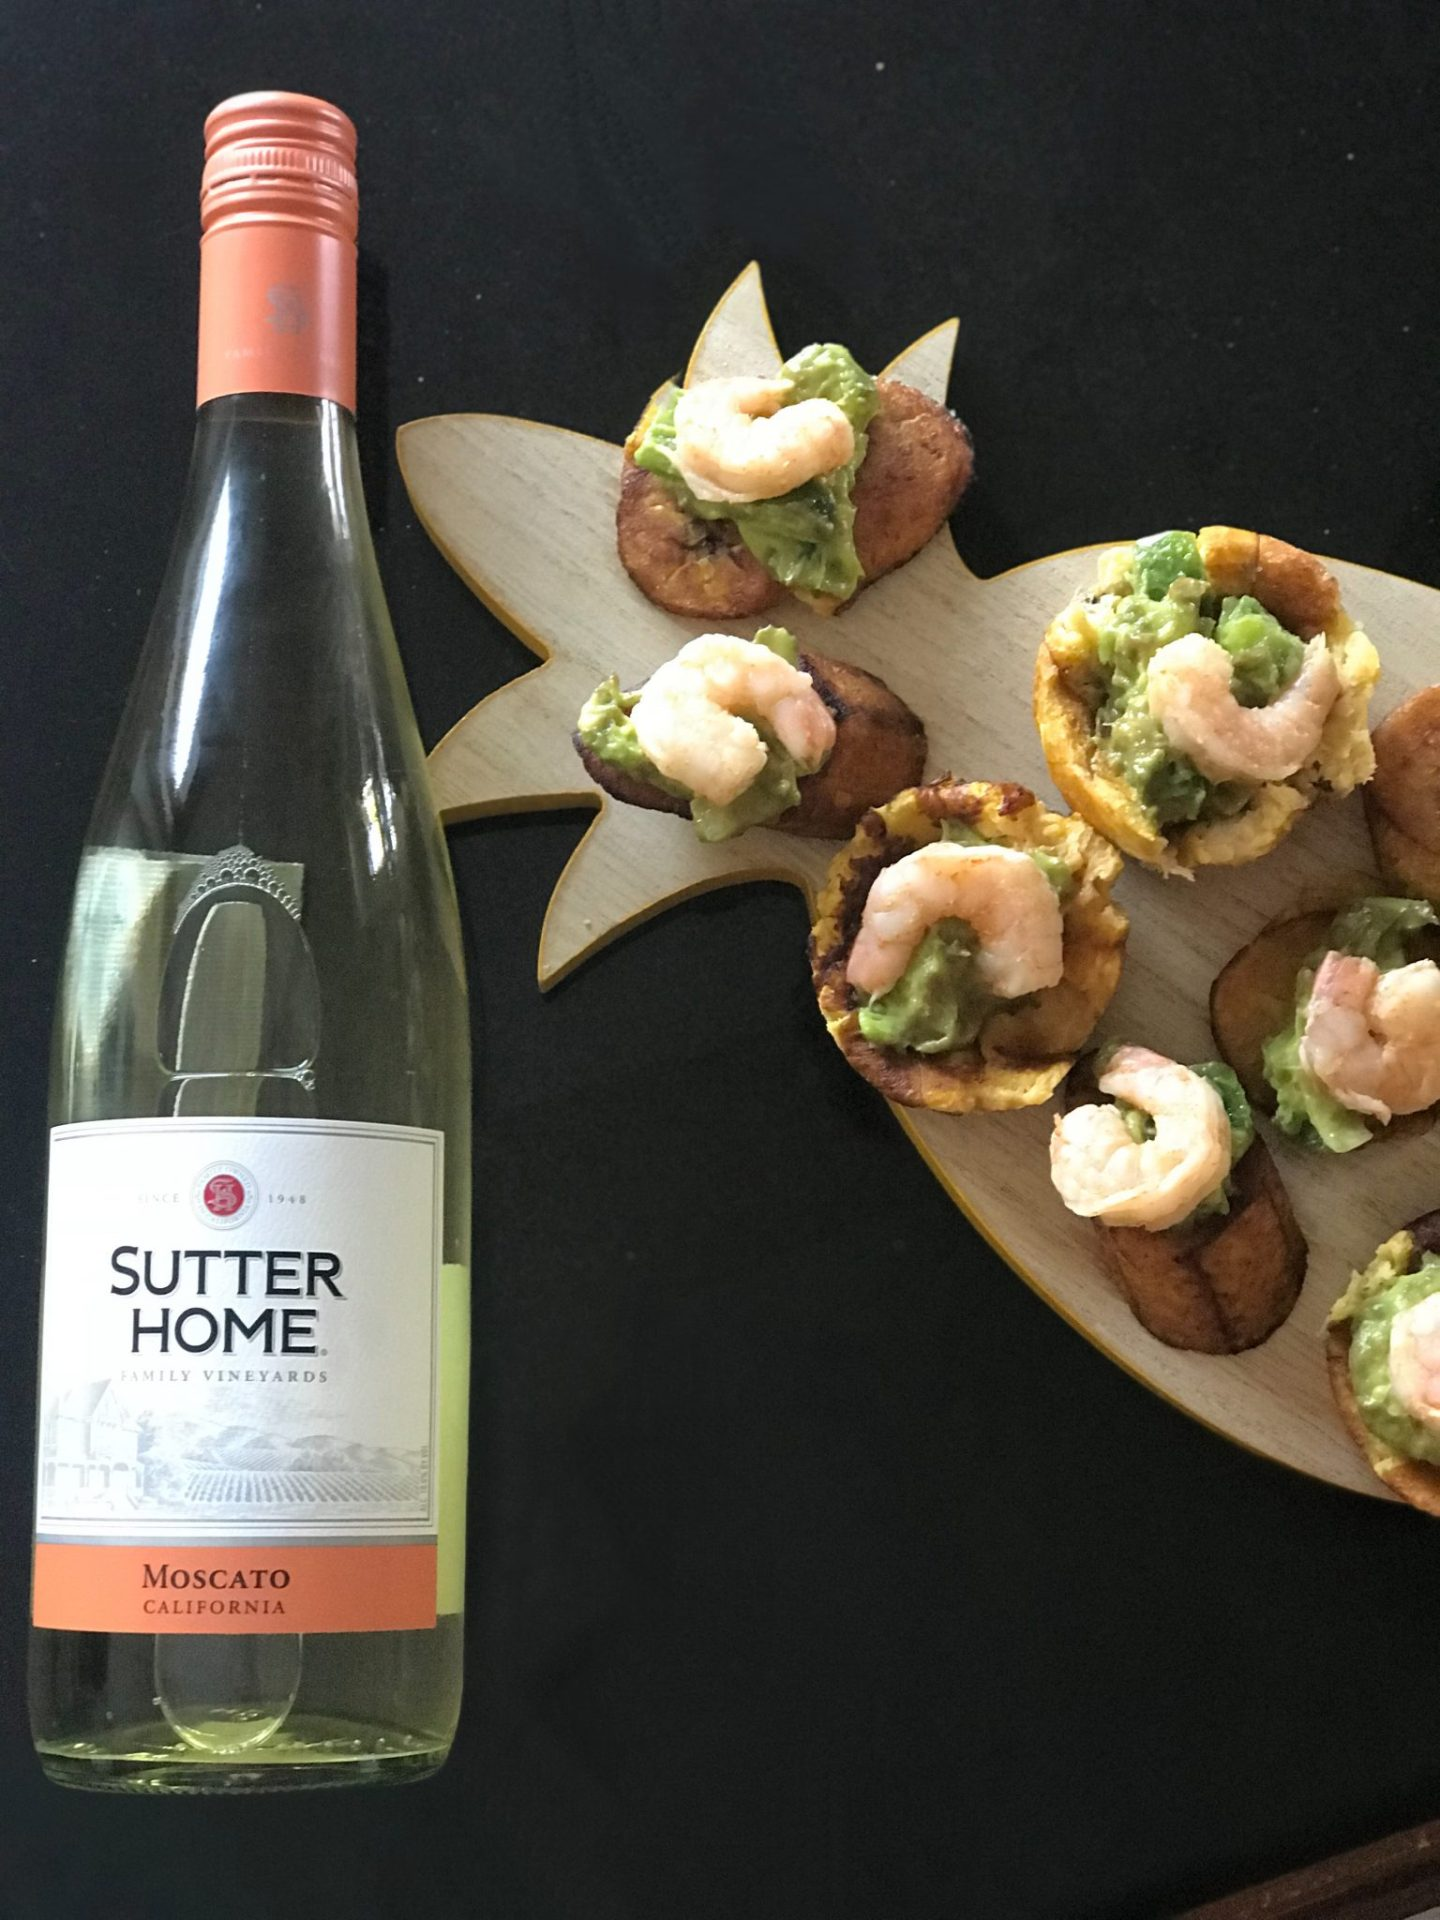 Spicy Sutter Home WIne Plantains